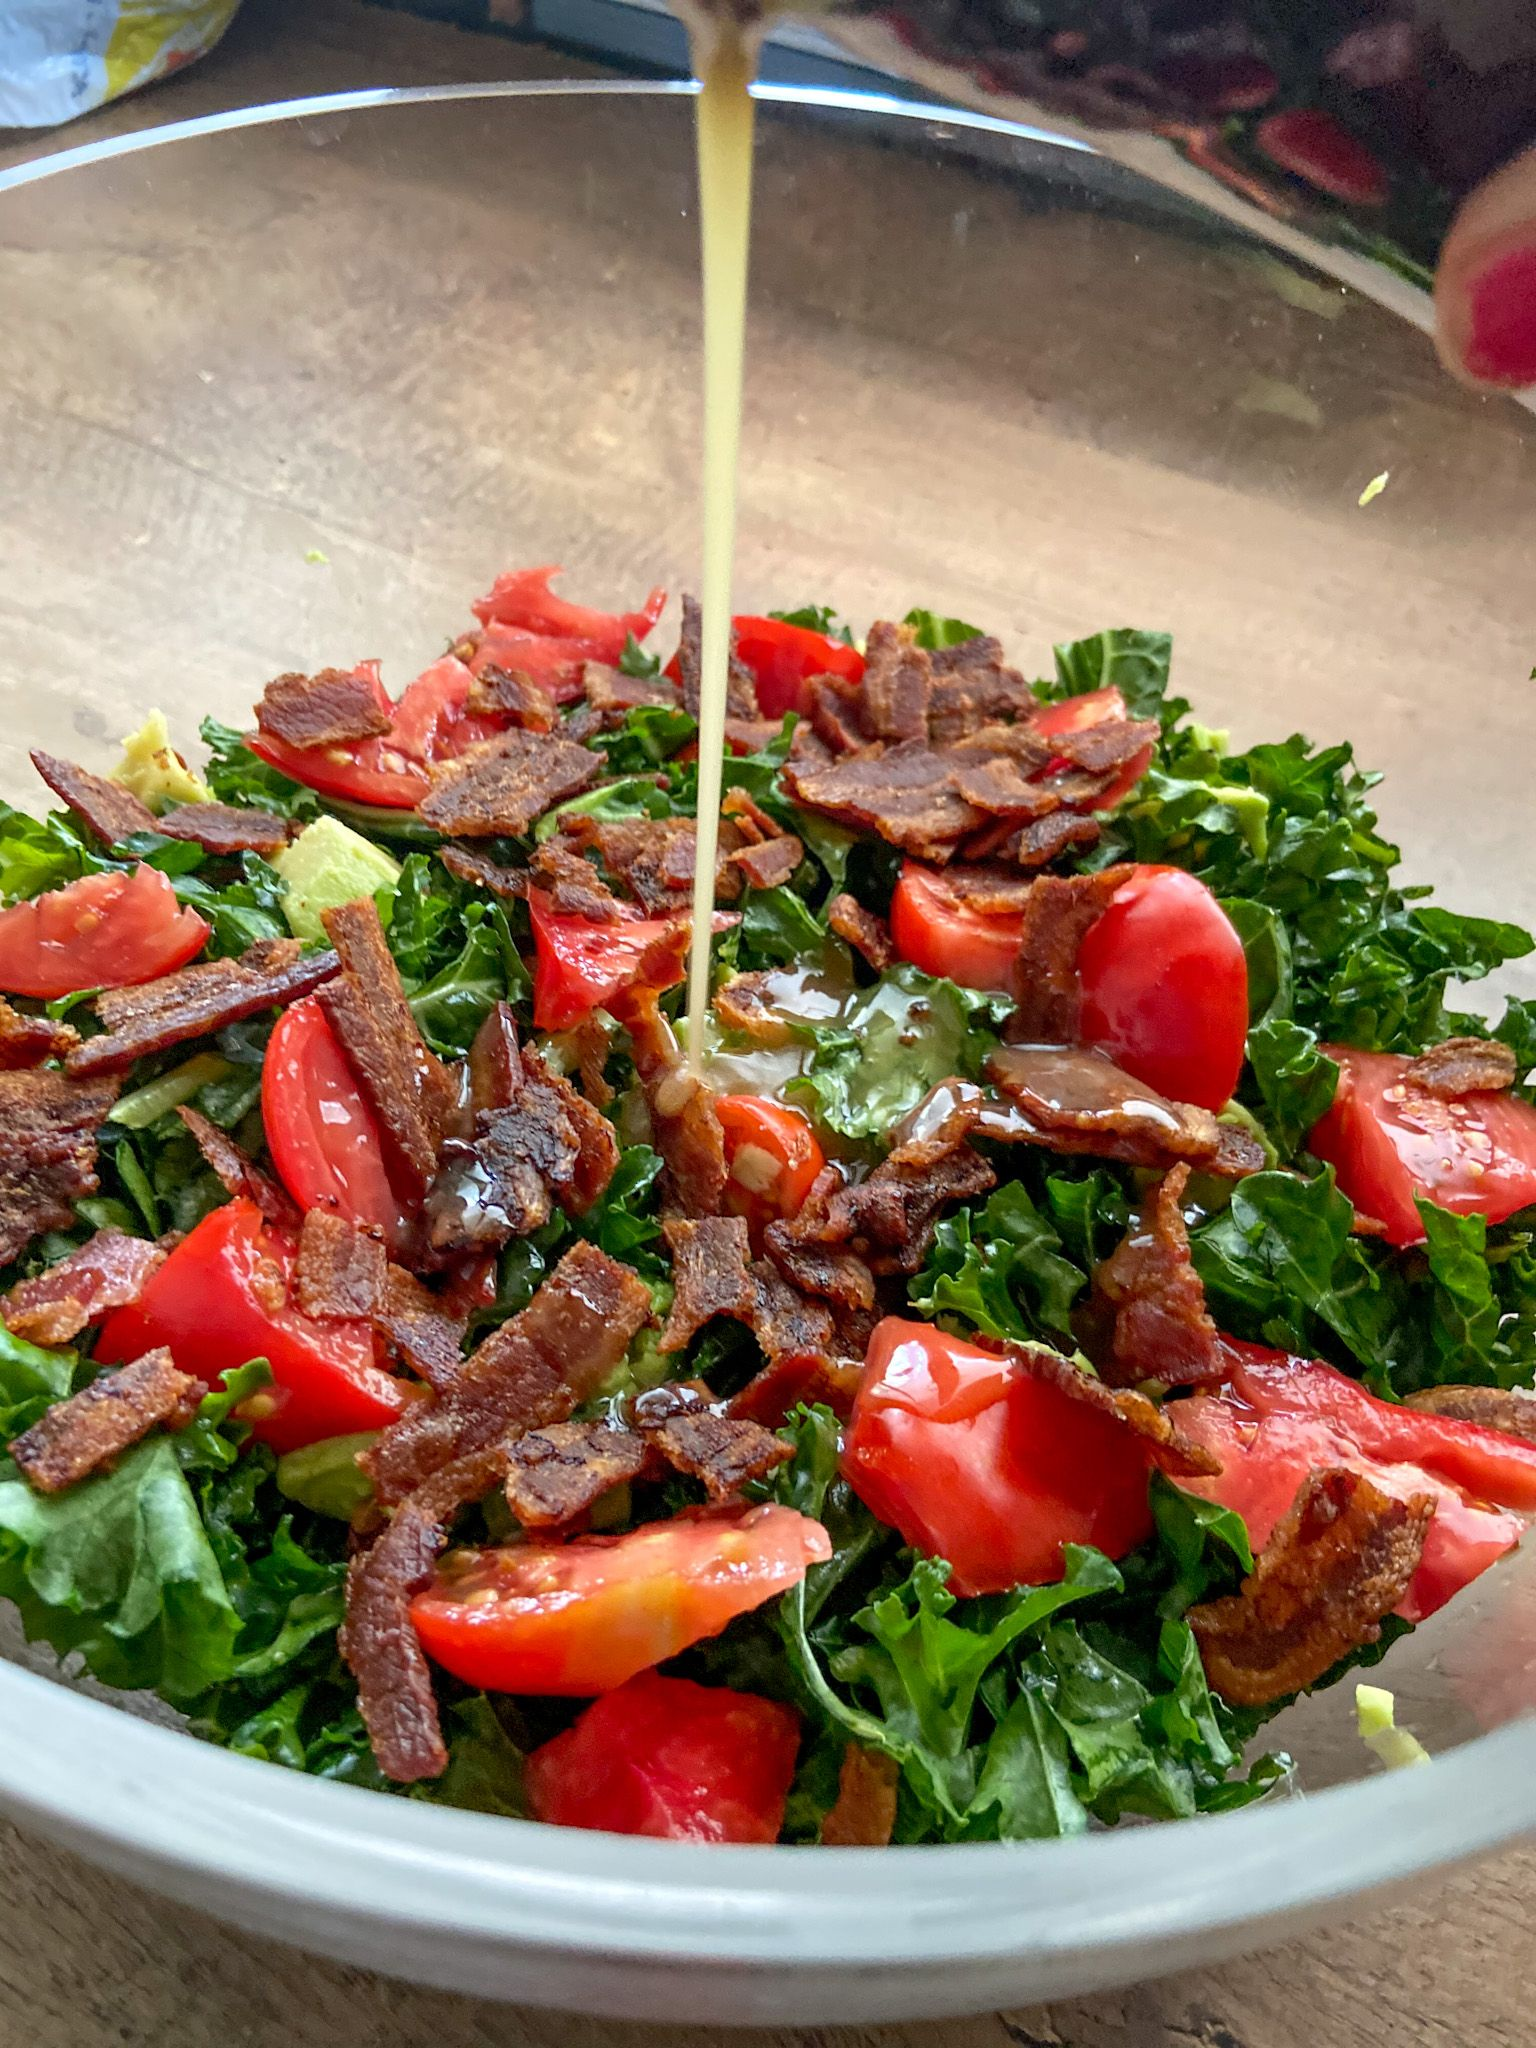 Kale Salad with a Maple Bacon Dressing drizzled on top   Fourganic Sisters